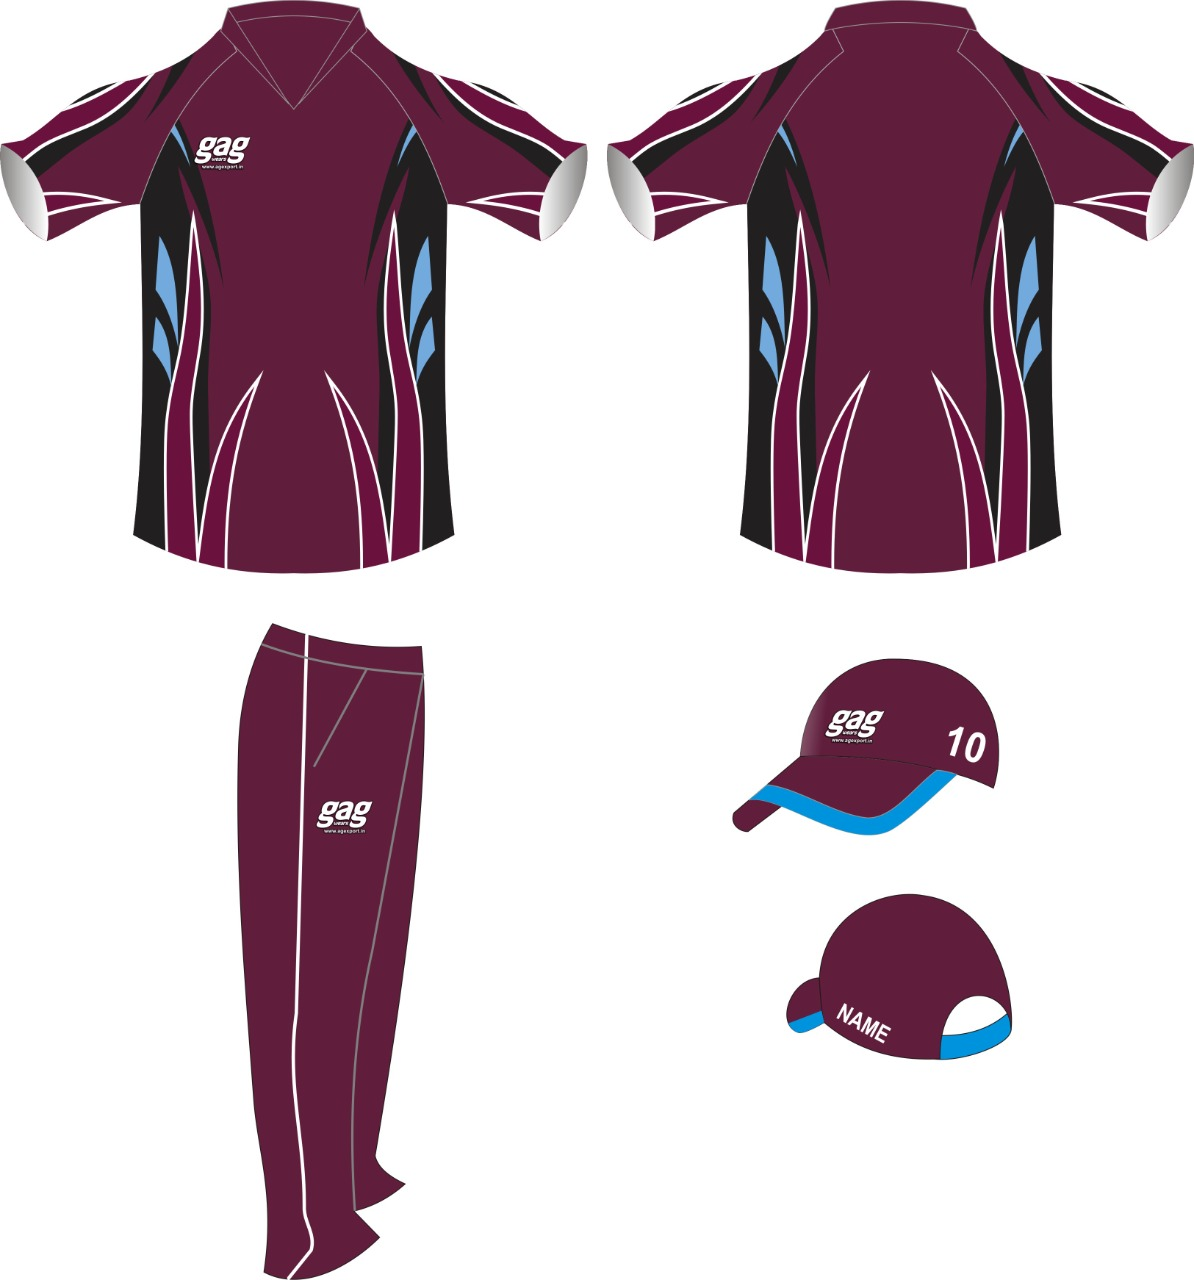 Womens Cricket Uniform Manufacturers in Jalandhar in Austria